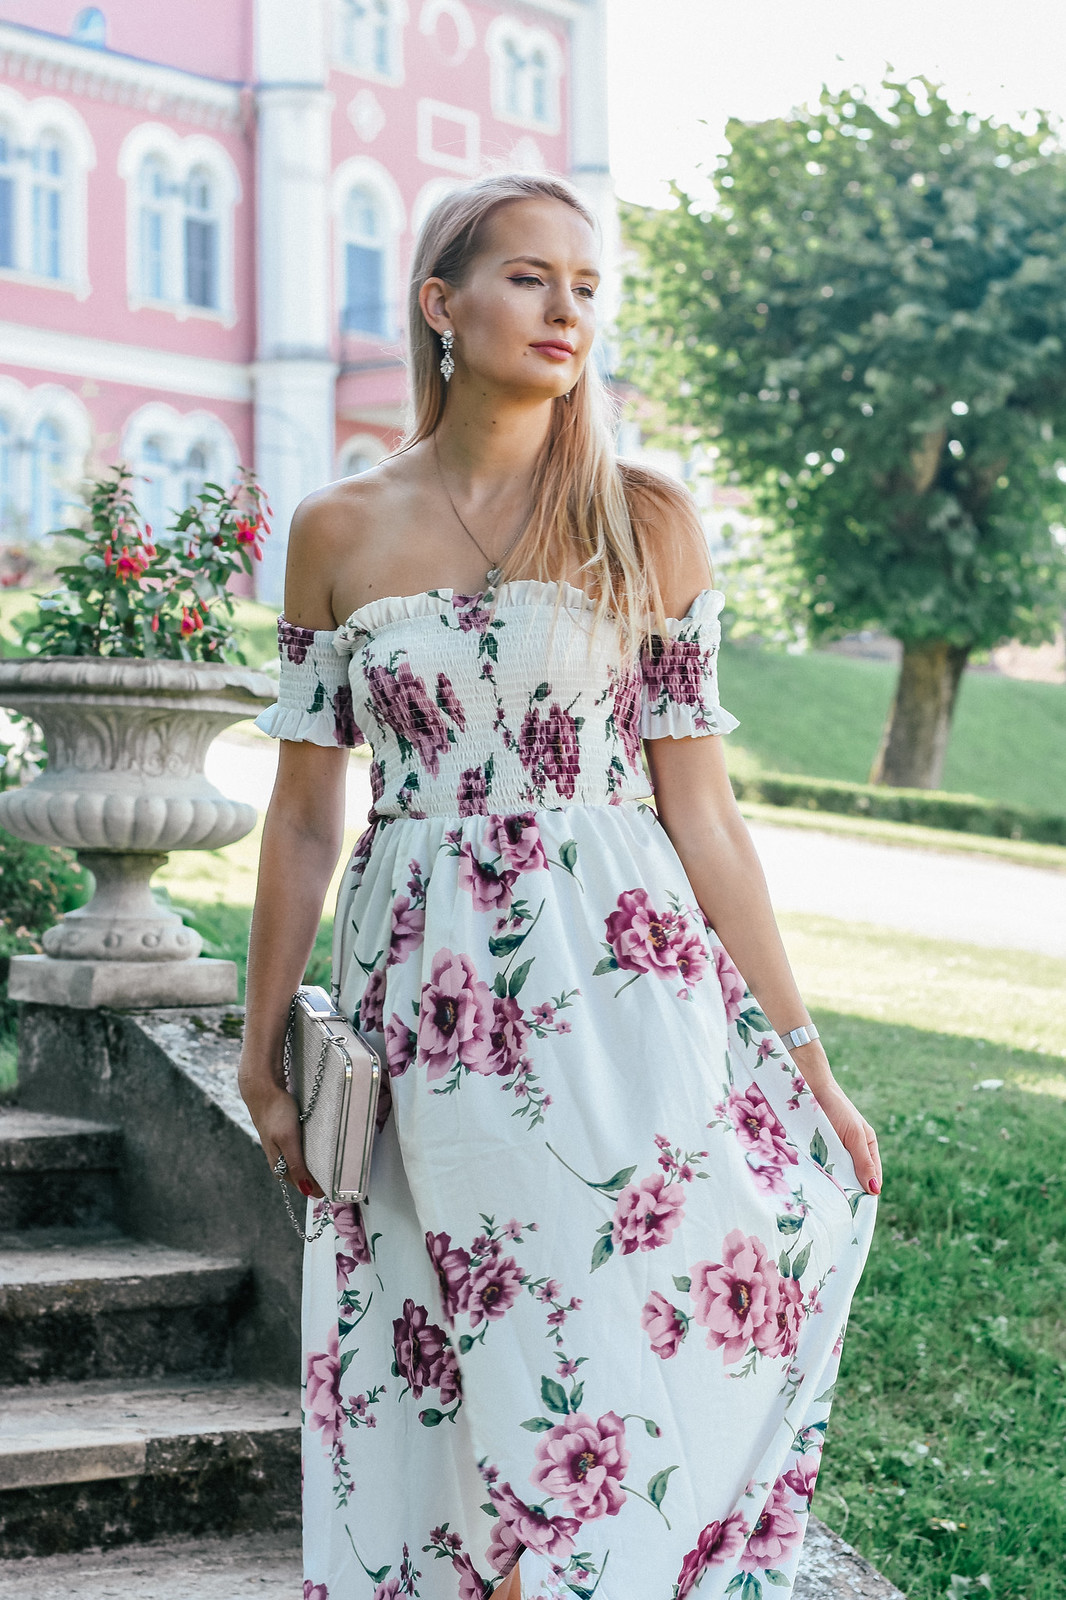 Off the shoulders dress outfit inspiration